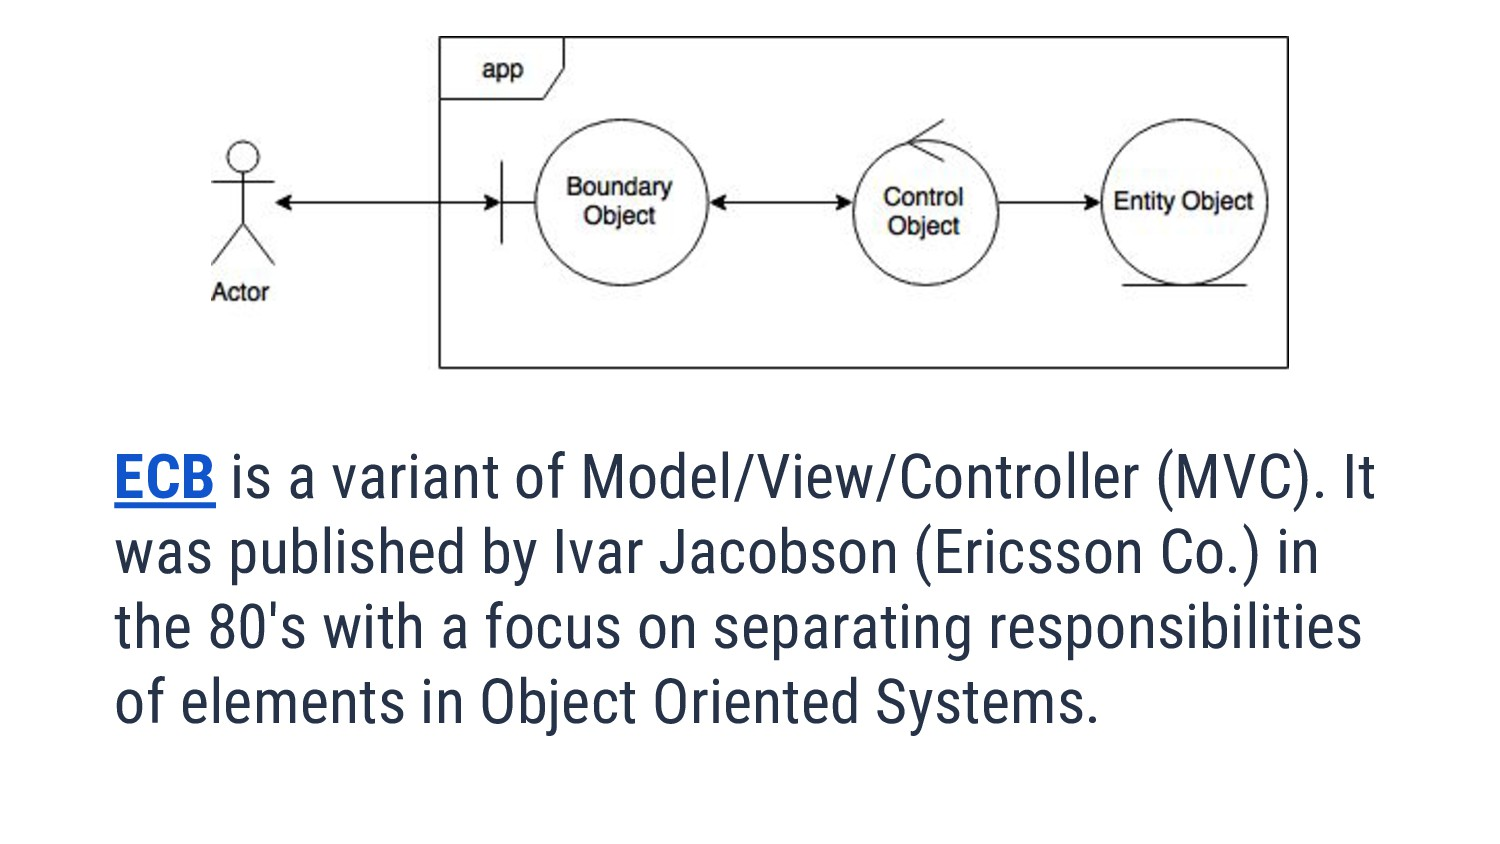 ECB is a variant of Model/View/Controller (MVC)...